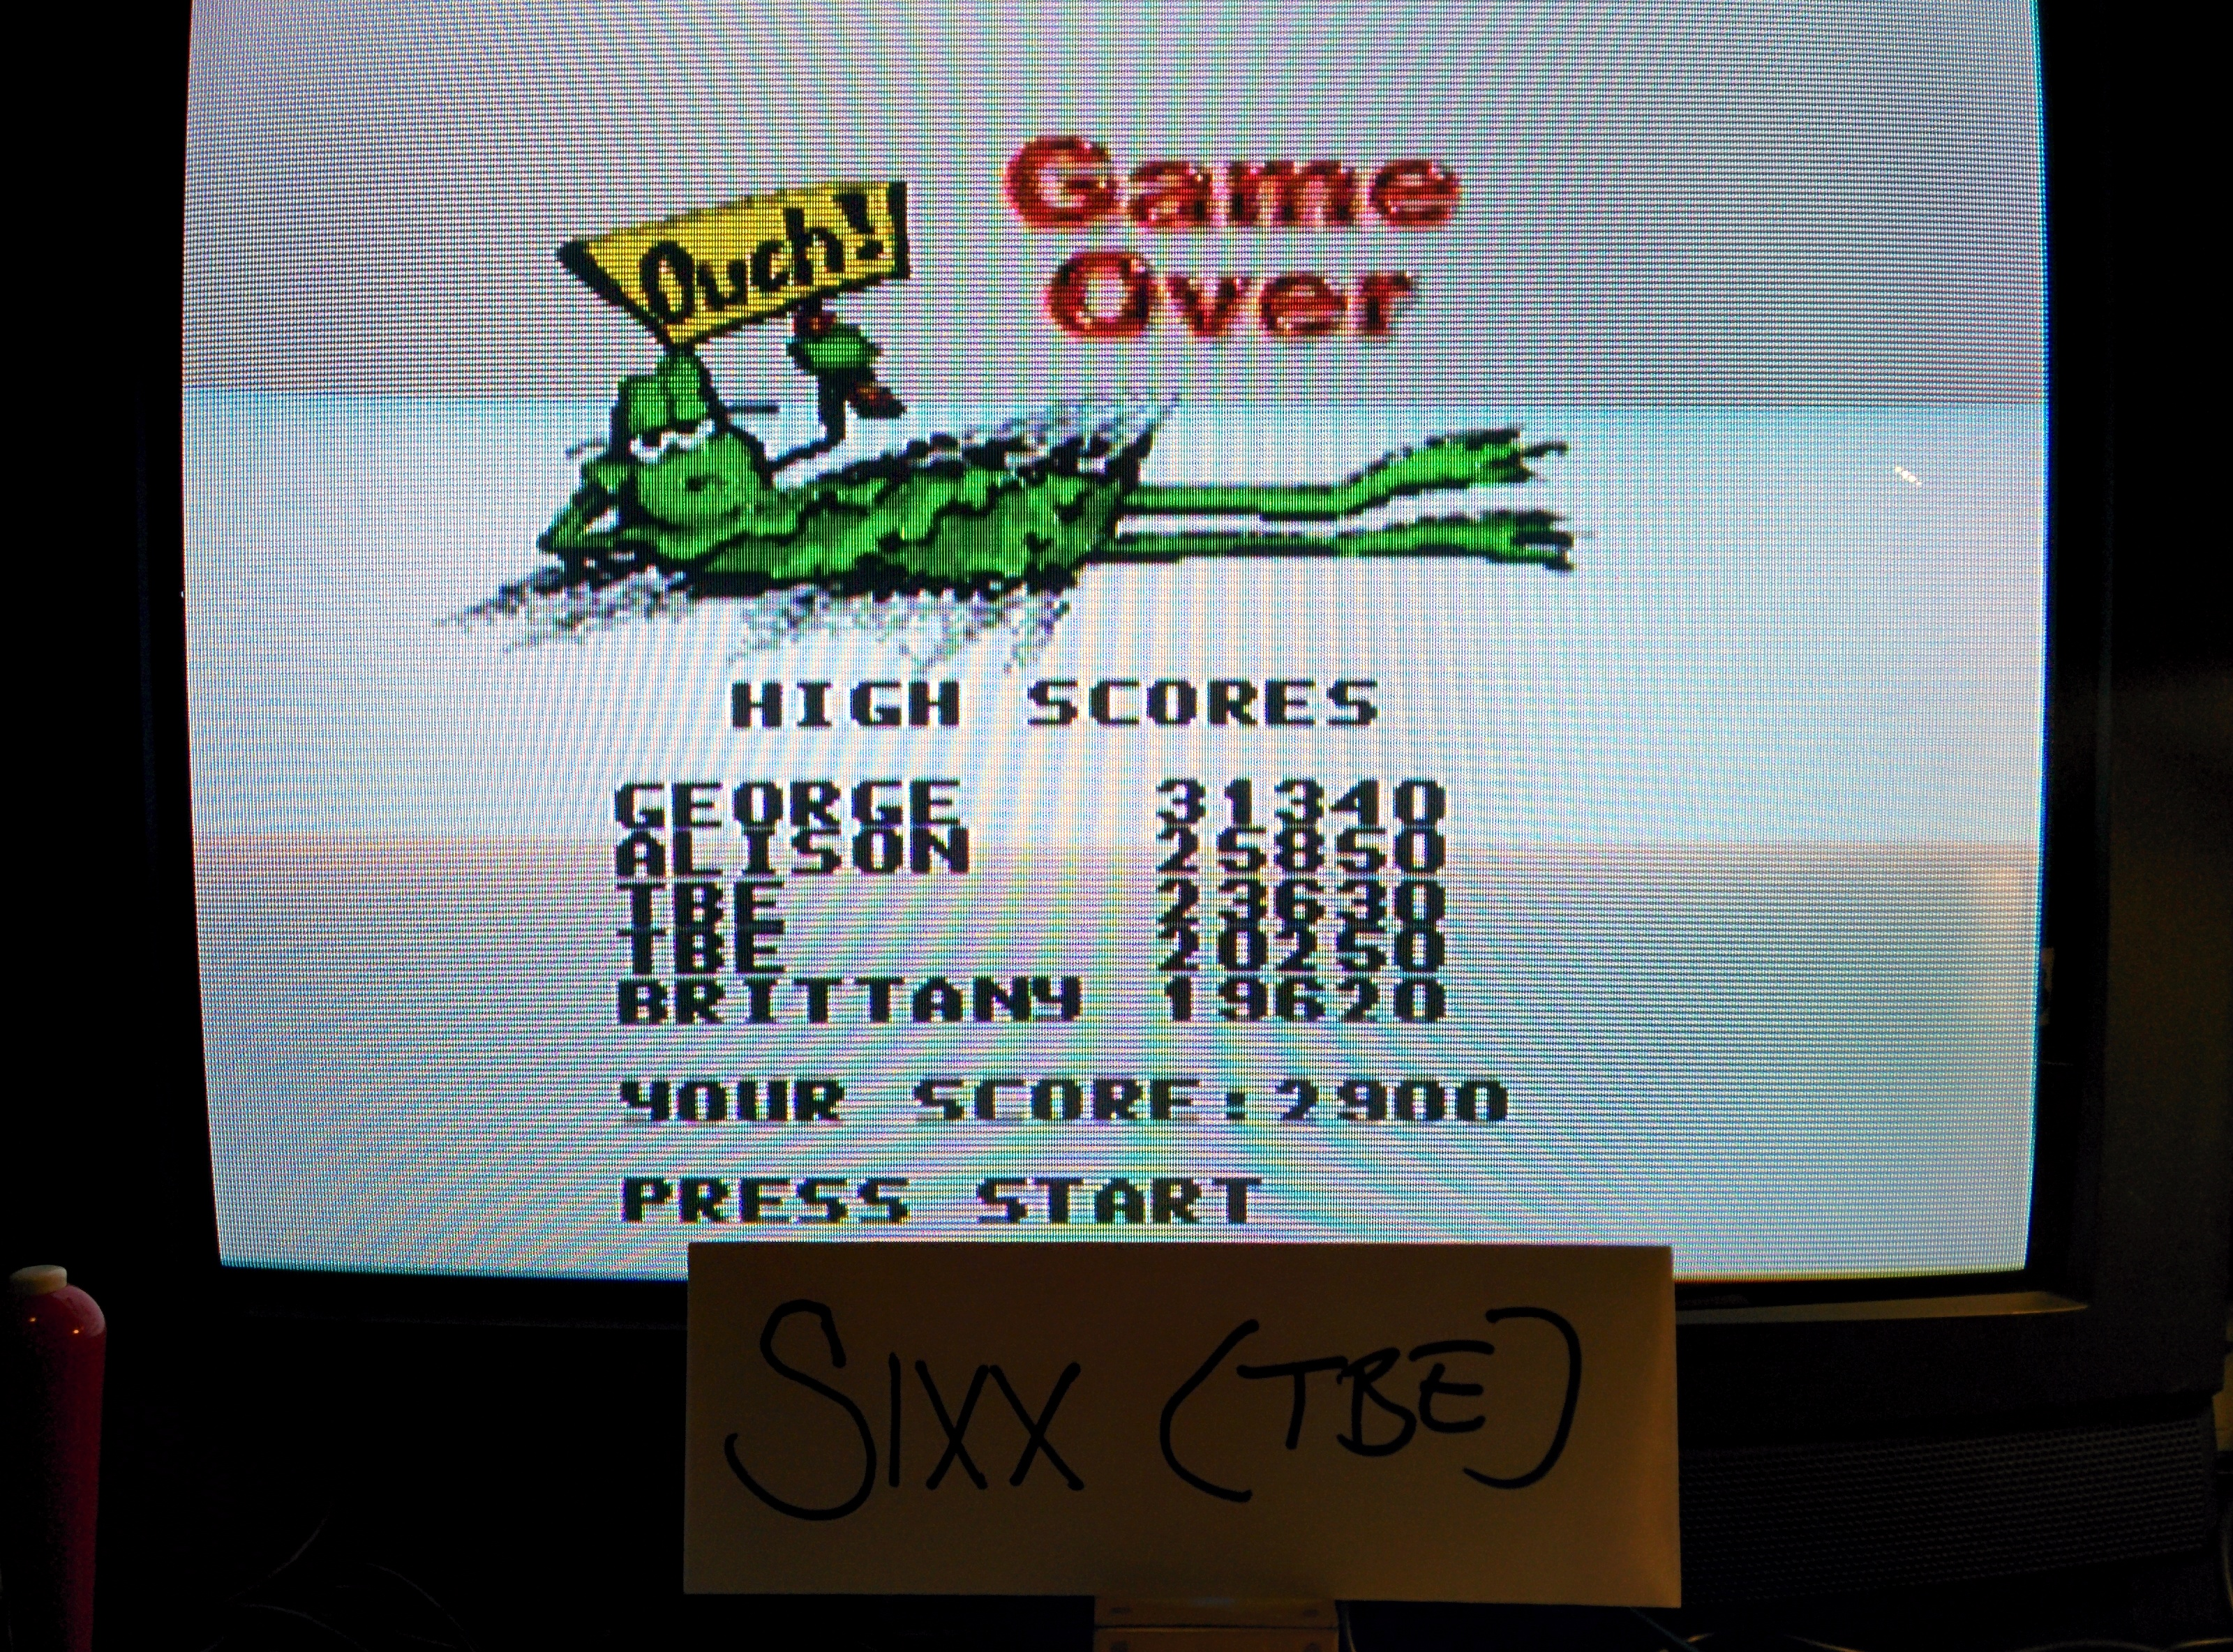 Sixx: Frogger (SNES/Super Famicom Emulated) 23,630 points on 2014-05-11 15:04:42